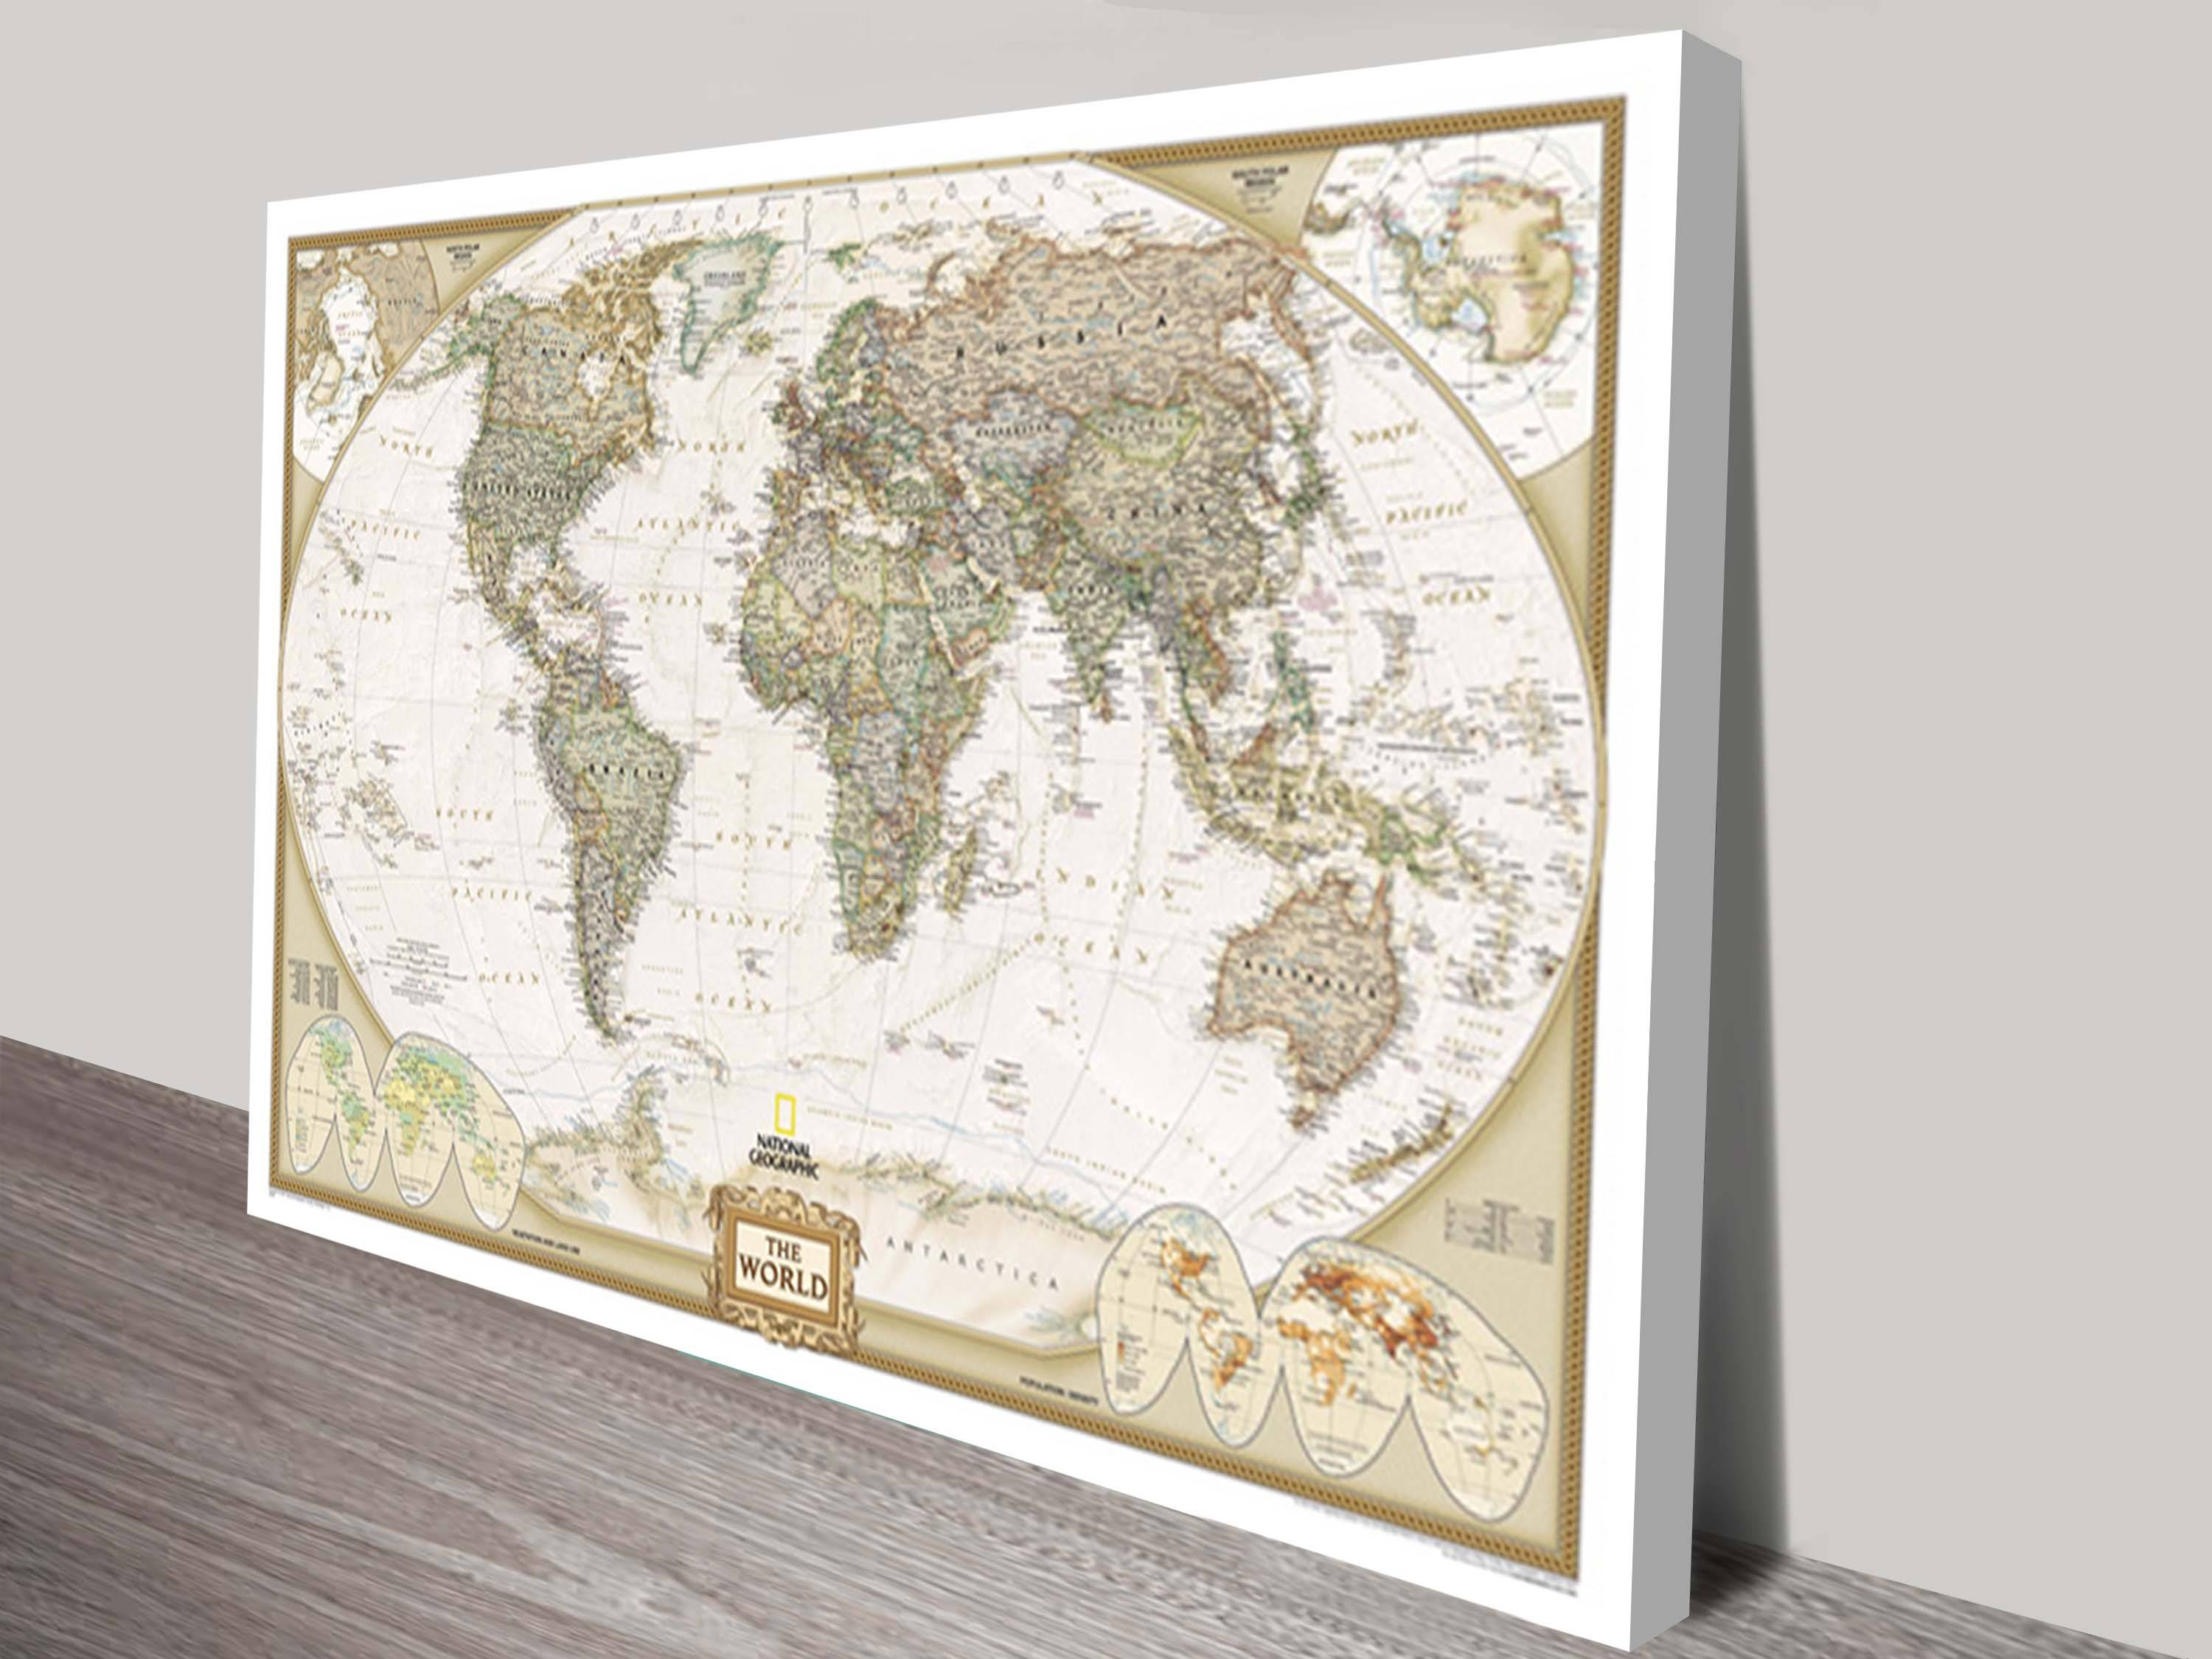 Explore World Map Wall Art Canvas World Map Print In Navy – Utlr With Regard To Newest Map Wall Art Maps (View 5 of 20)